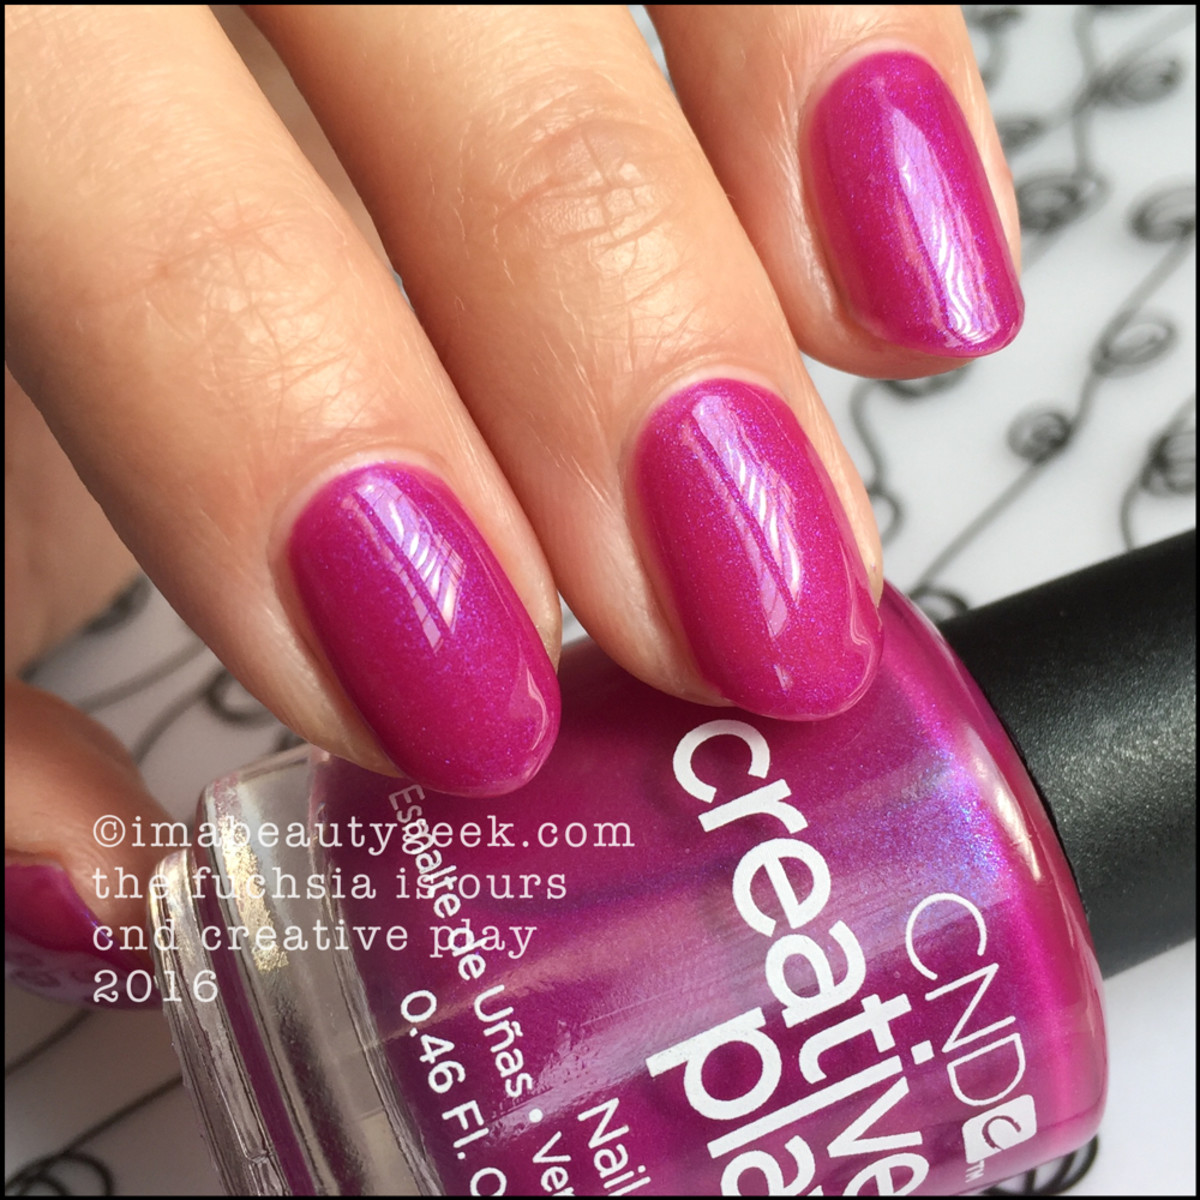 CND Creative Play The Fuchsia is Ours_CND Creative Play Nail Polish Swatches